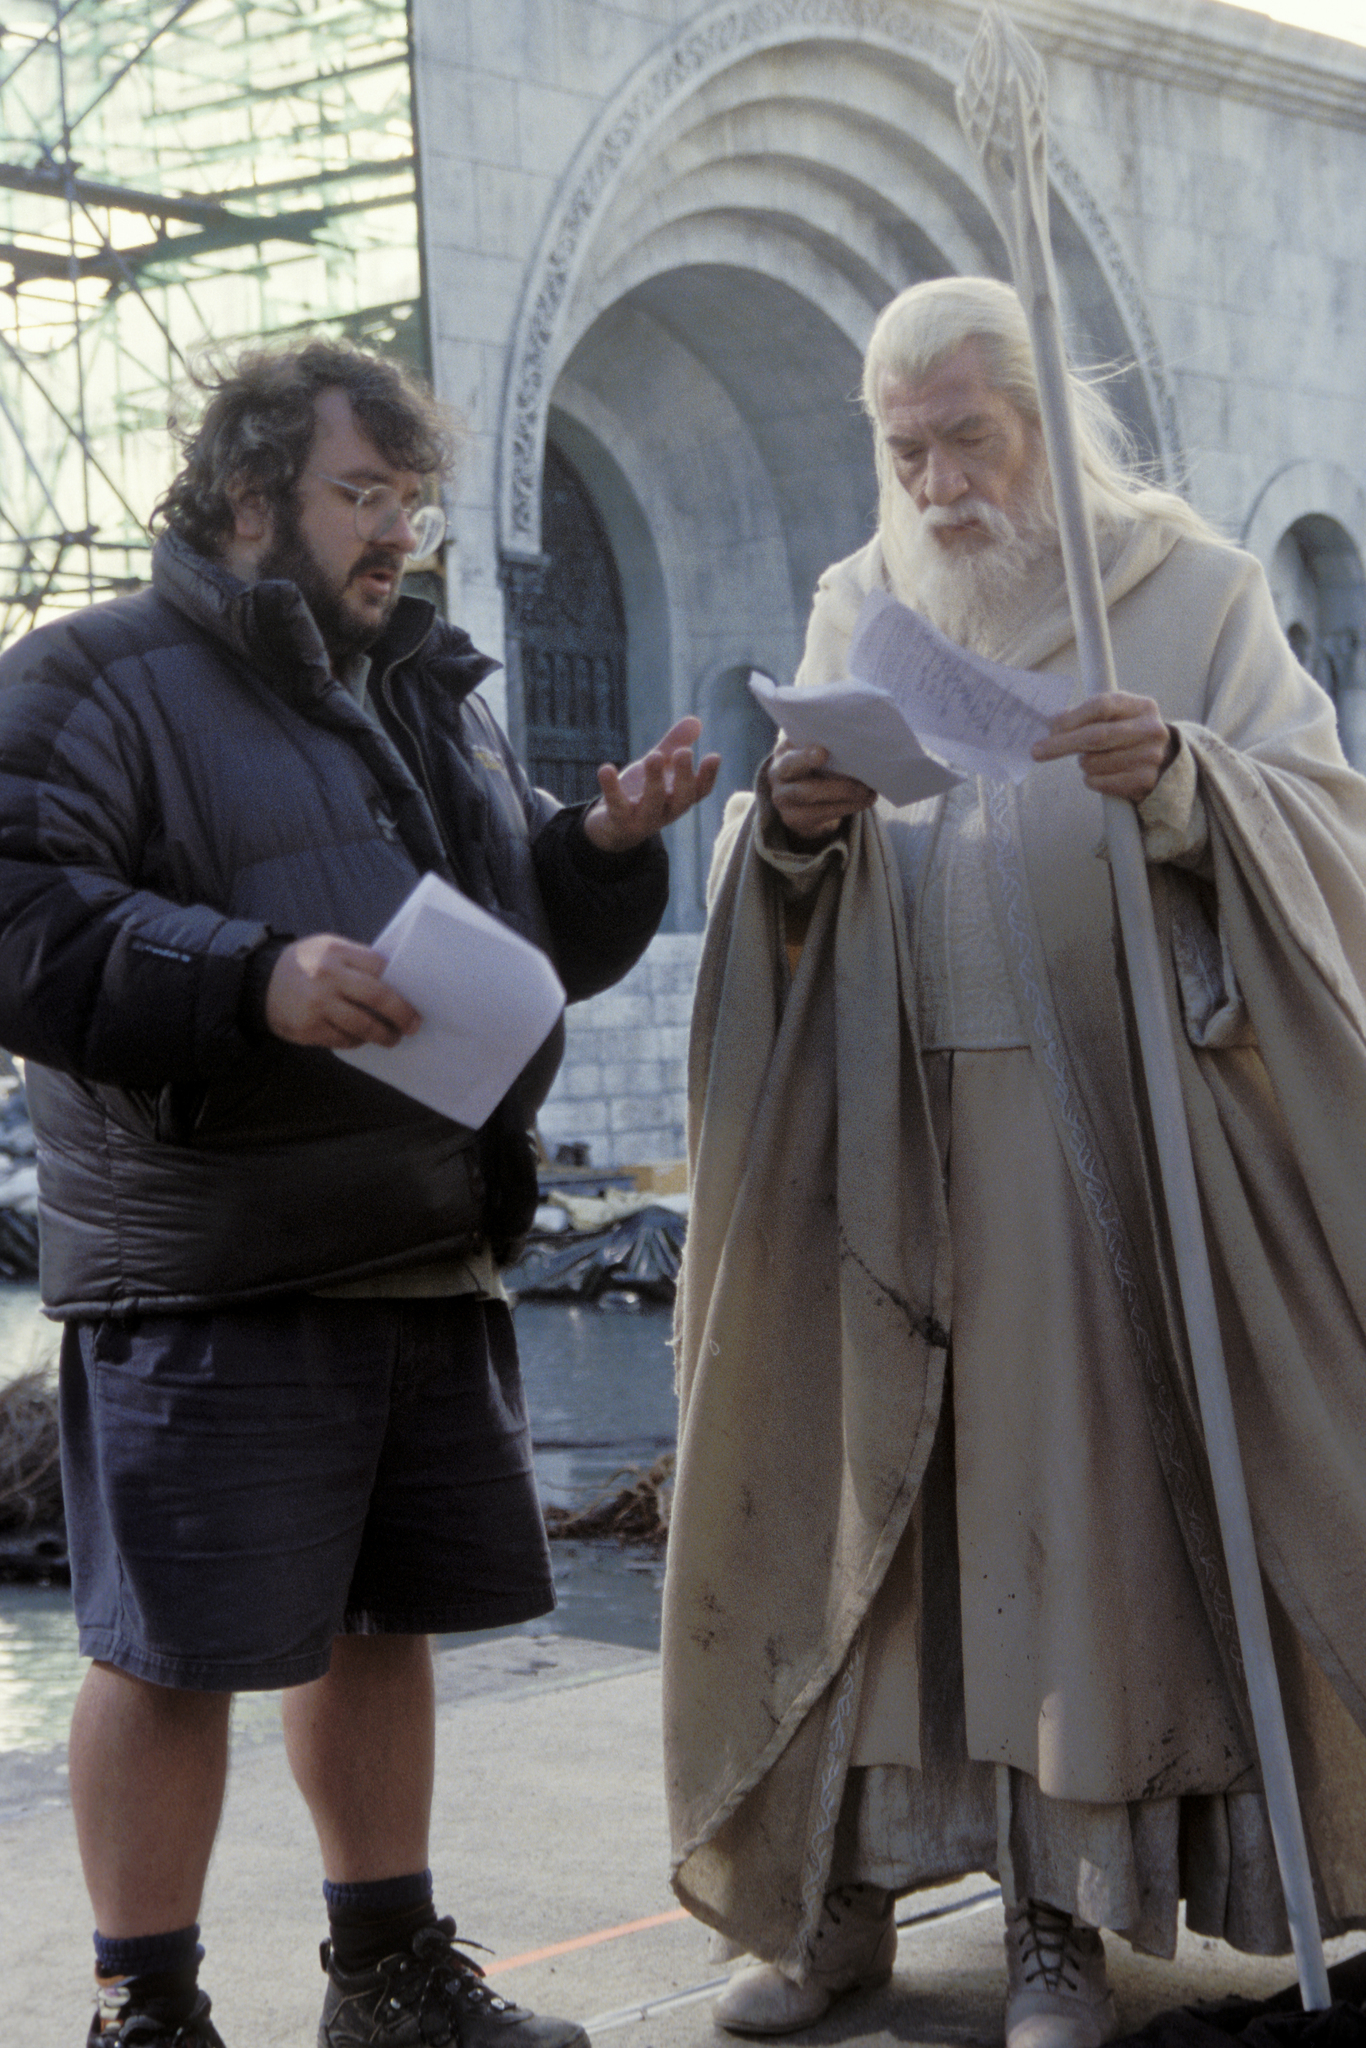 Peter Jackson and Ian McKellen in The Lord of the Rings: The Return of the King (2003)